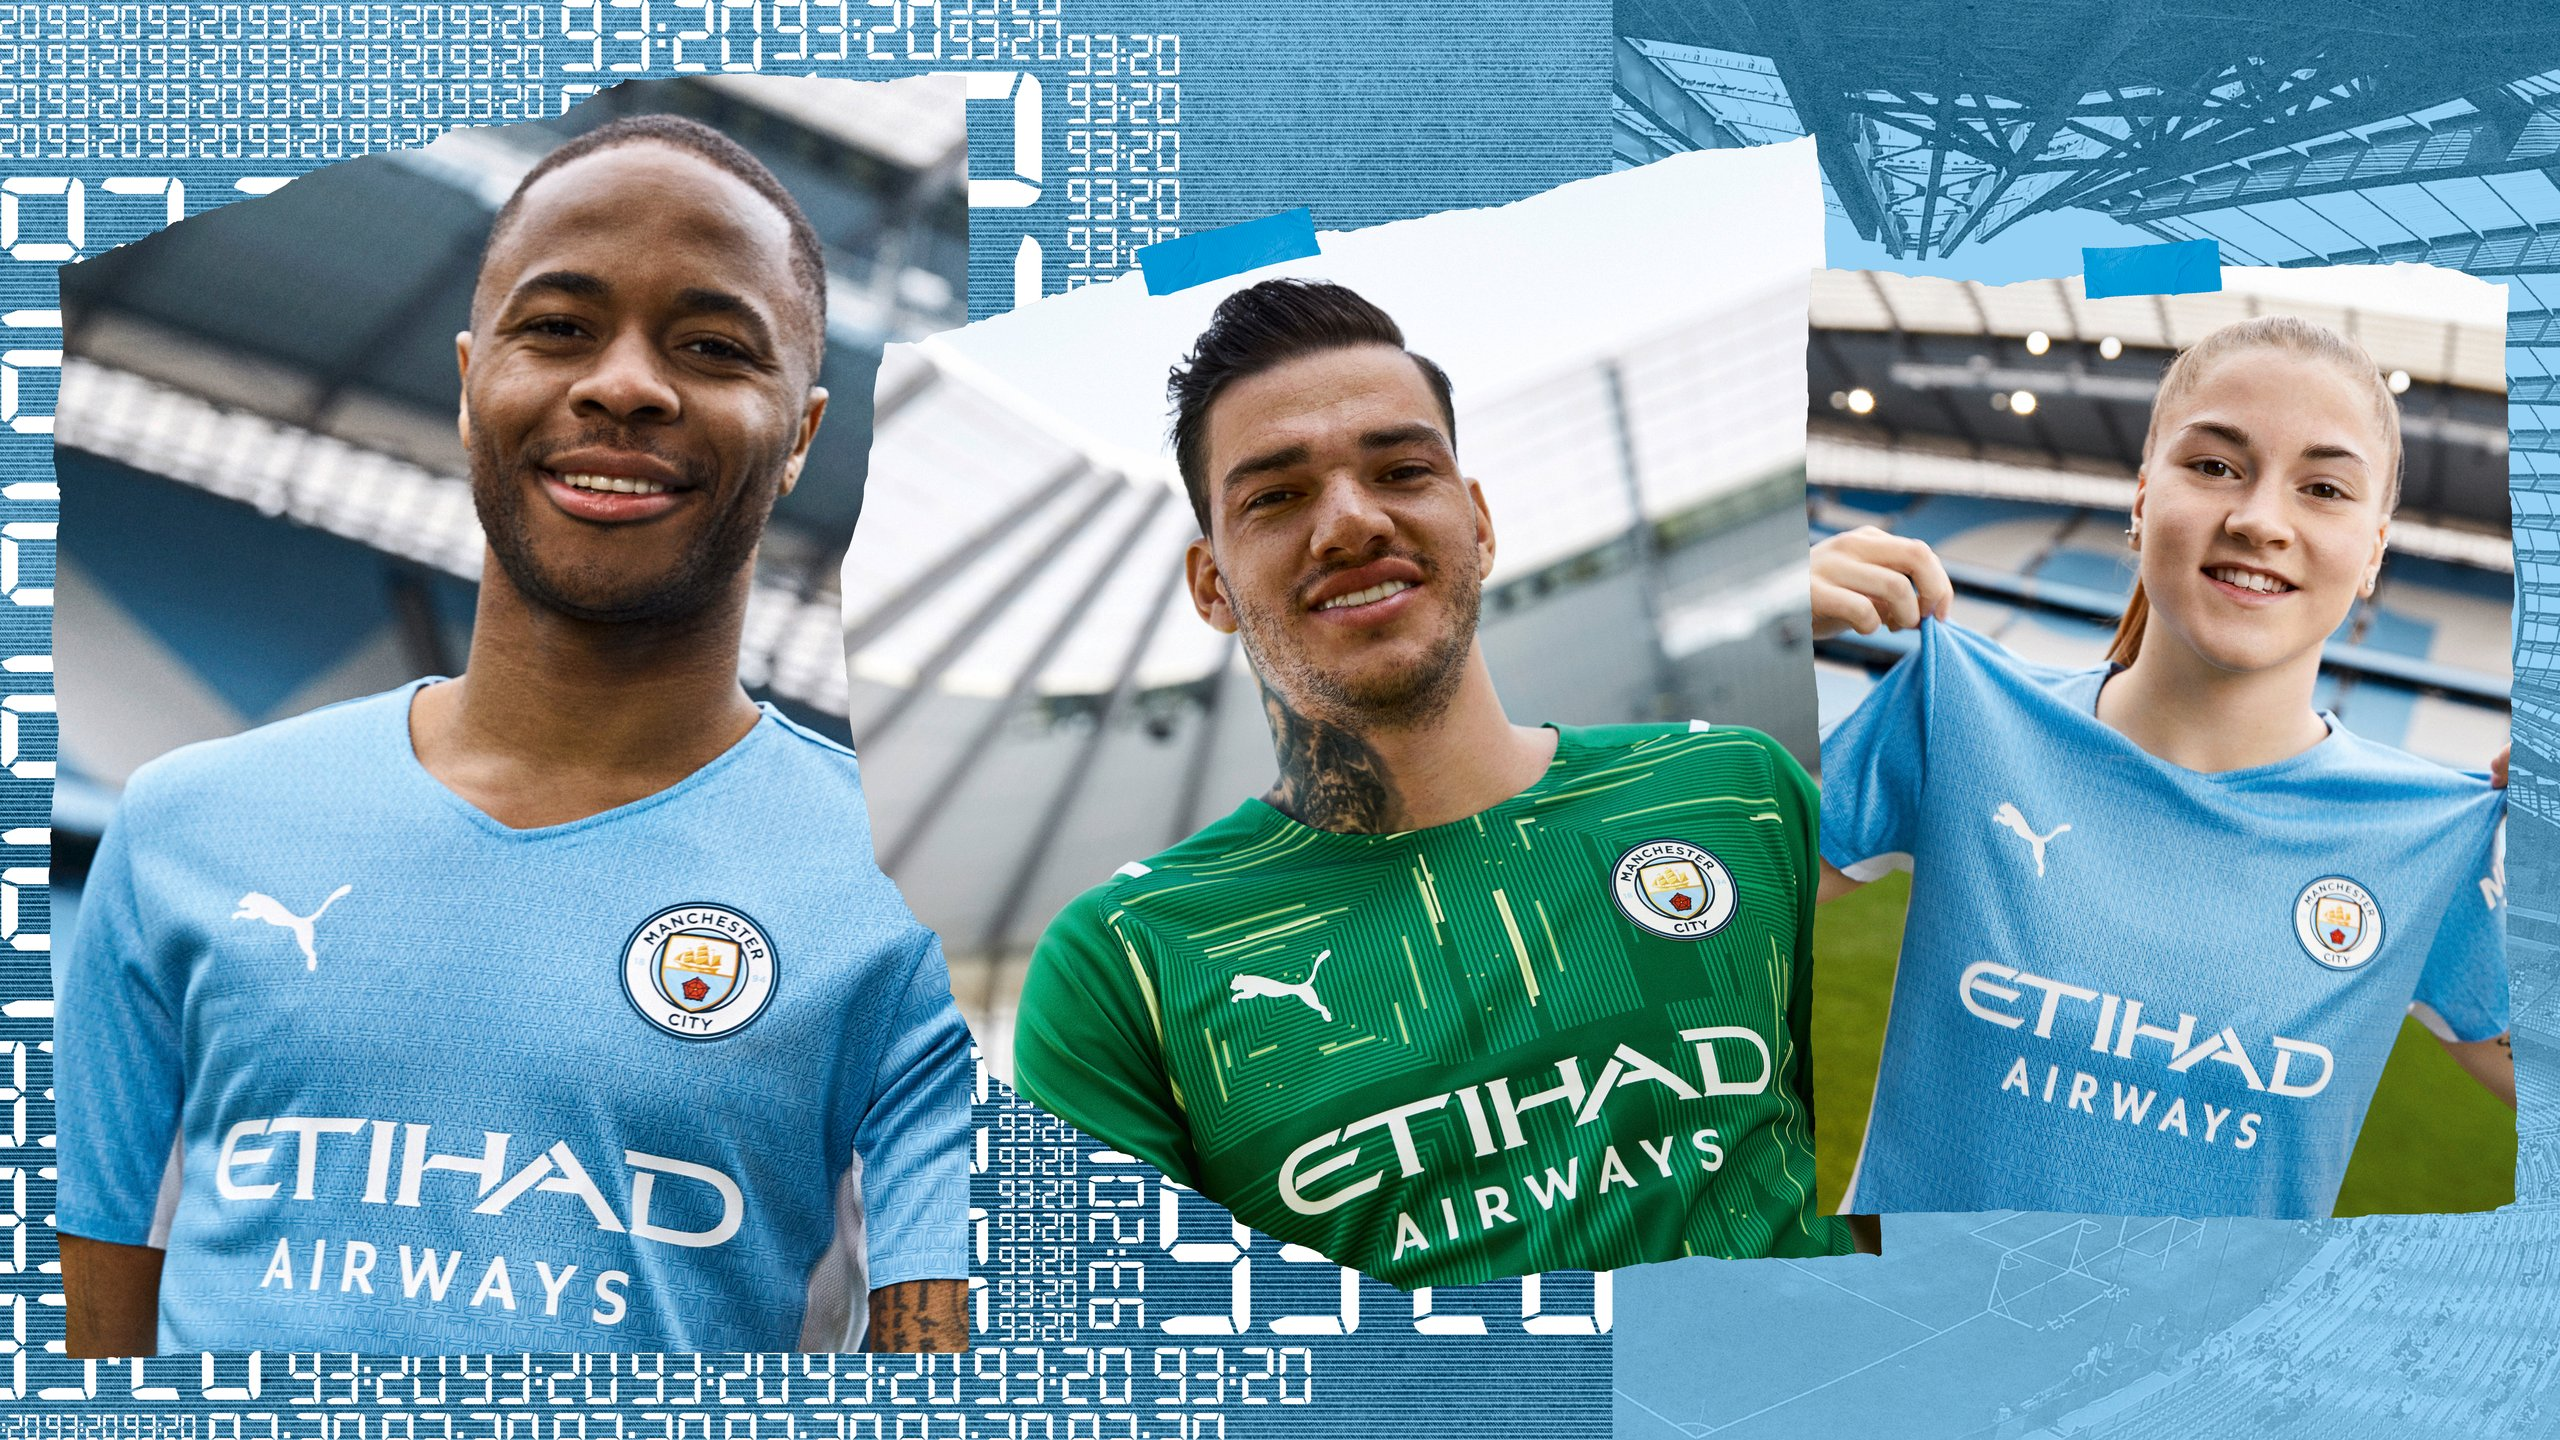 City and PUMA unveil new 2021-22 home kit in tribute to 93:20 goal